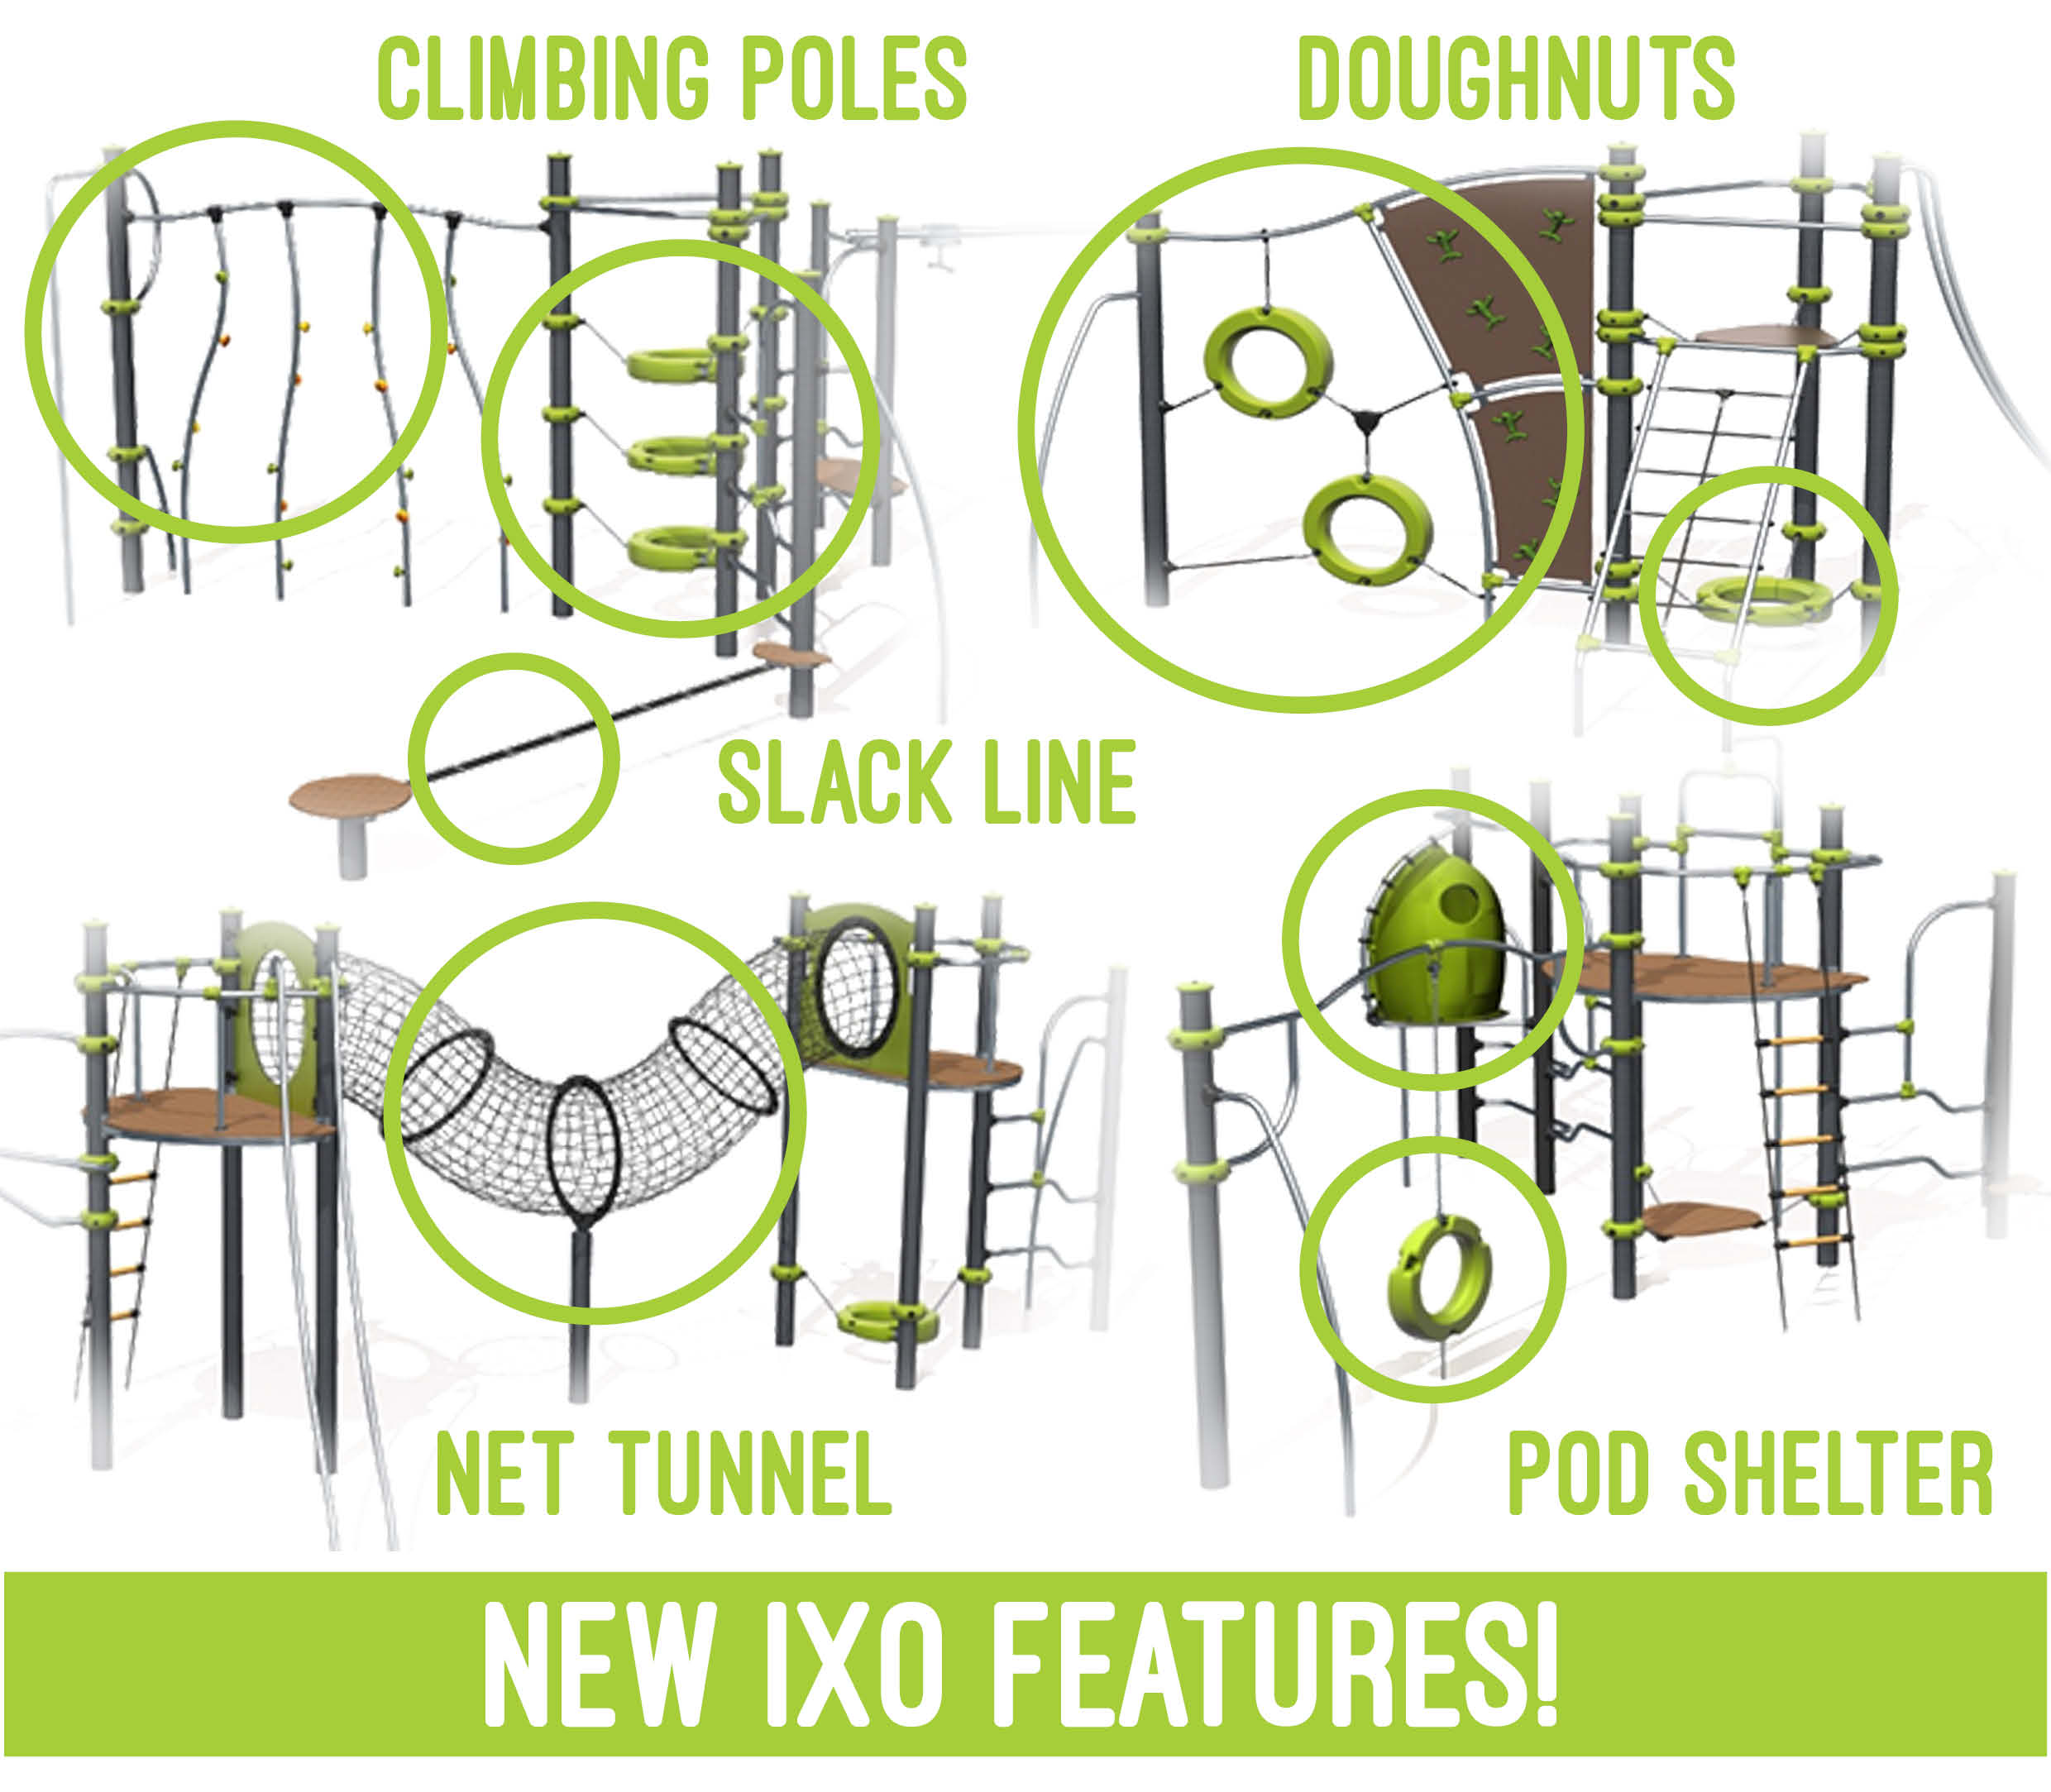 Ixo New Features